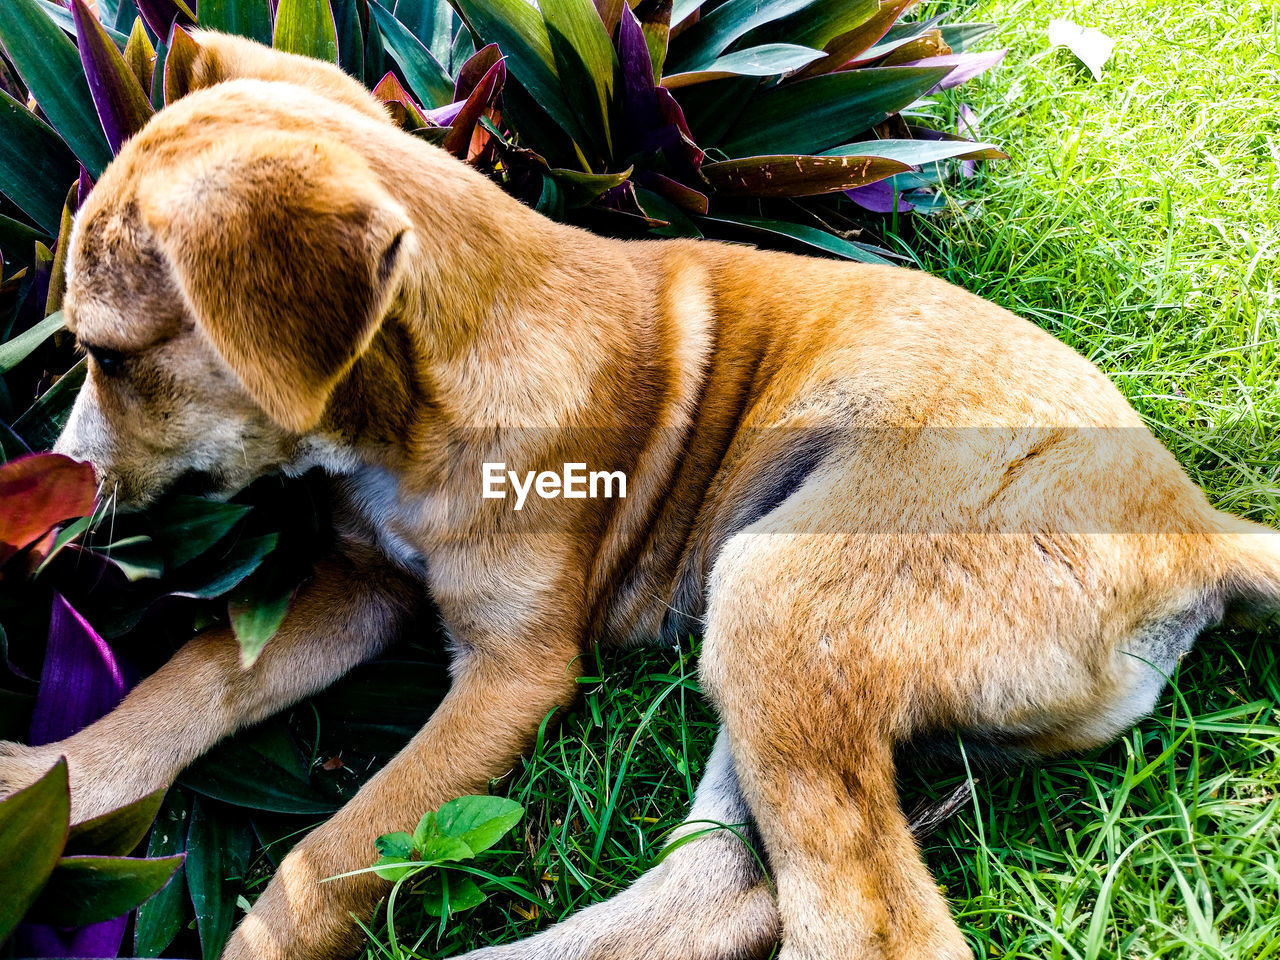 animal themes, one animal, domestic animals, pets, grass, mammal, day, no people, relaxation, dog, outdoors, close-up, nature